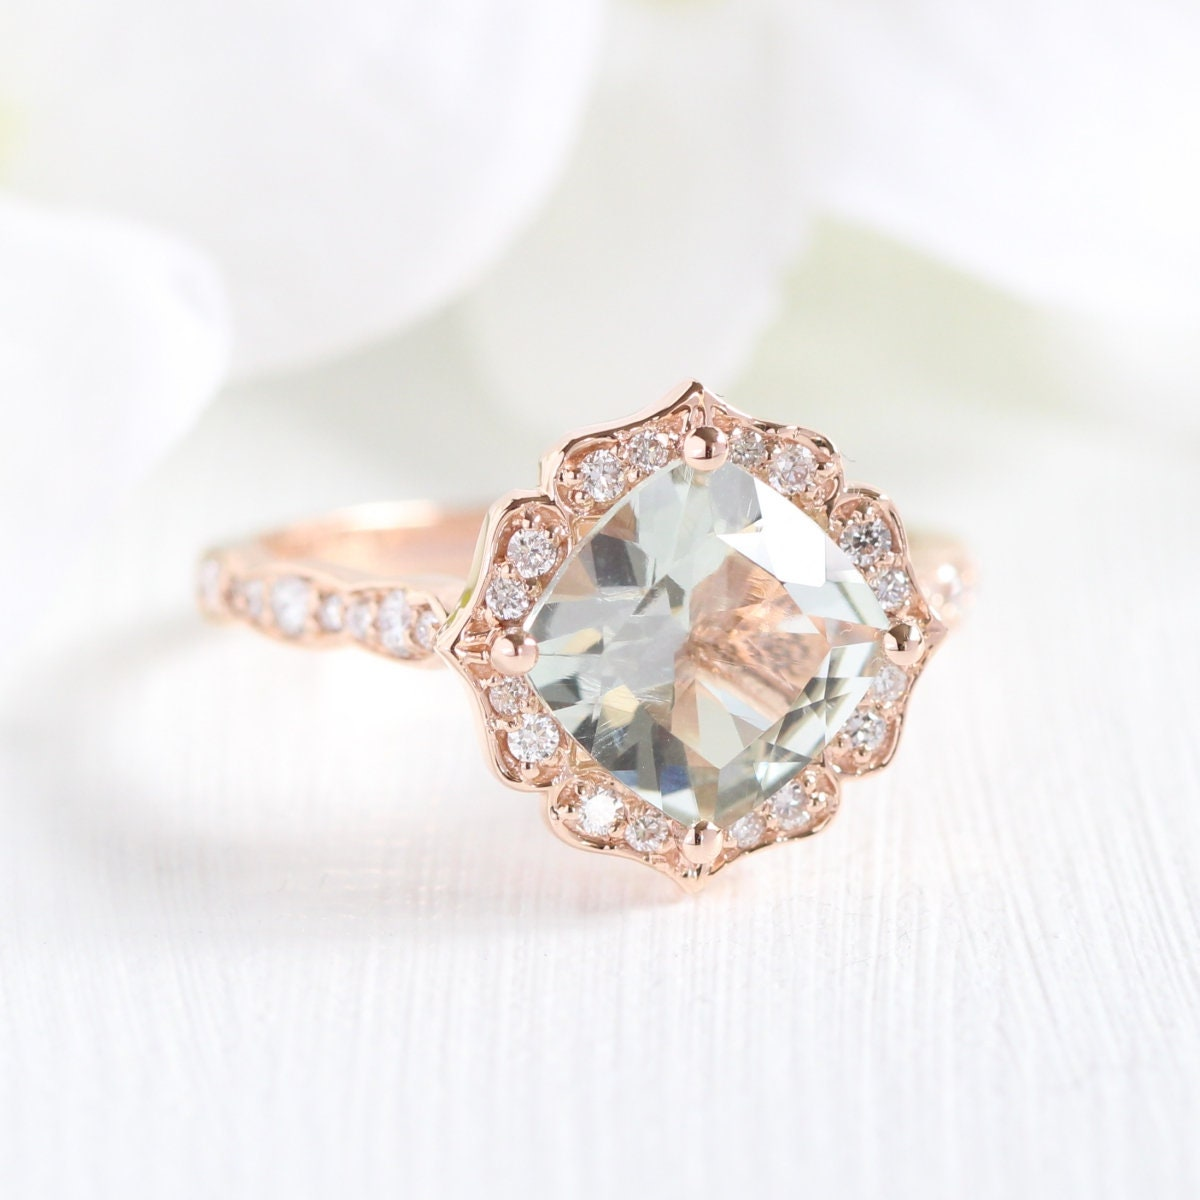 6646f7e39abc2 Rose Gold Green Amethyst Diamond Engagement Ring in Vintage Floral  Scalloped Diamond Wedding Band 14k Gold 8x8mm Cushion Green Gemstone Ring